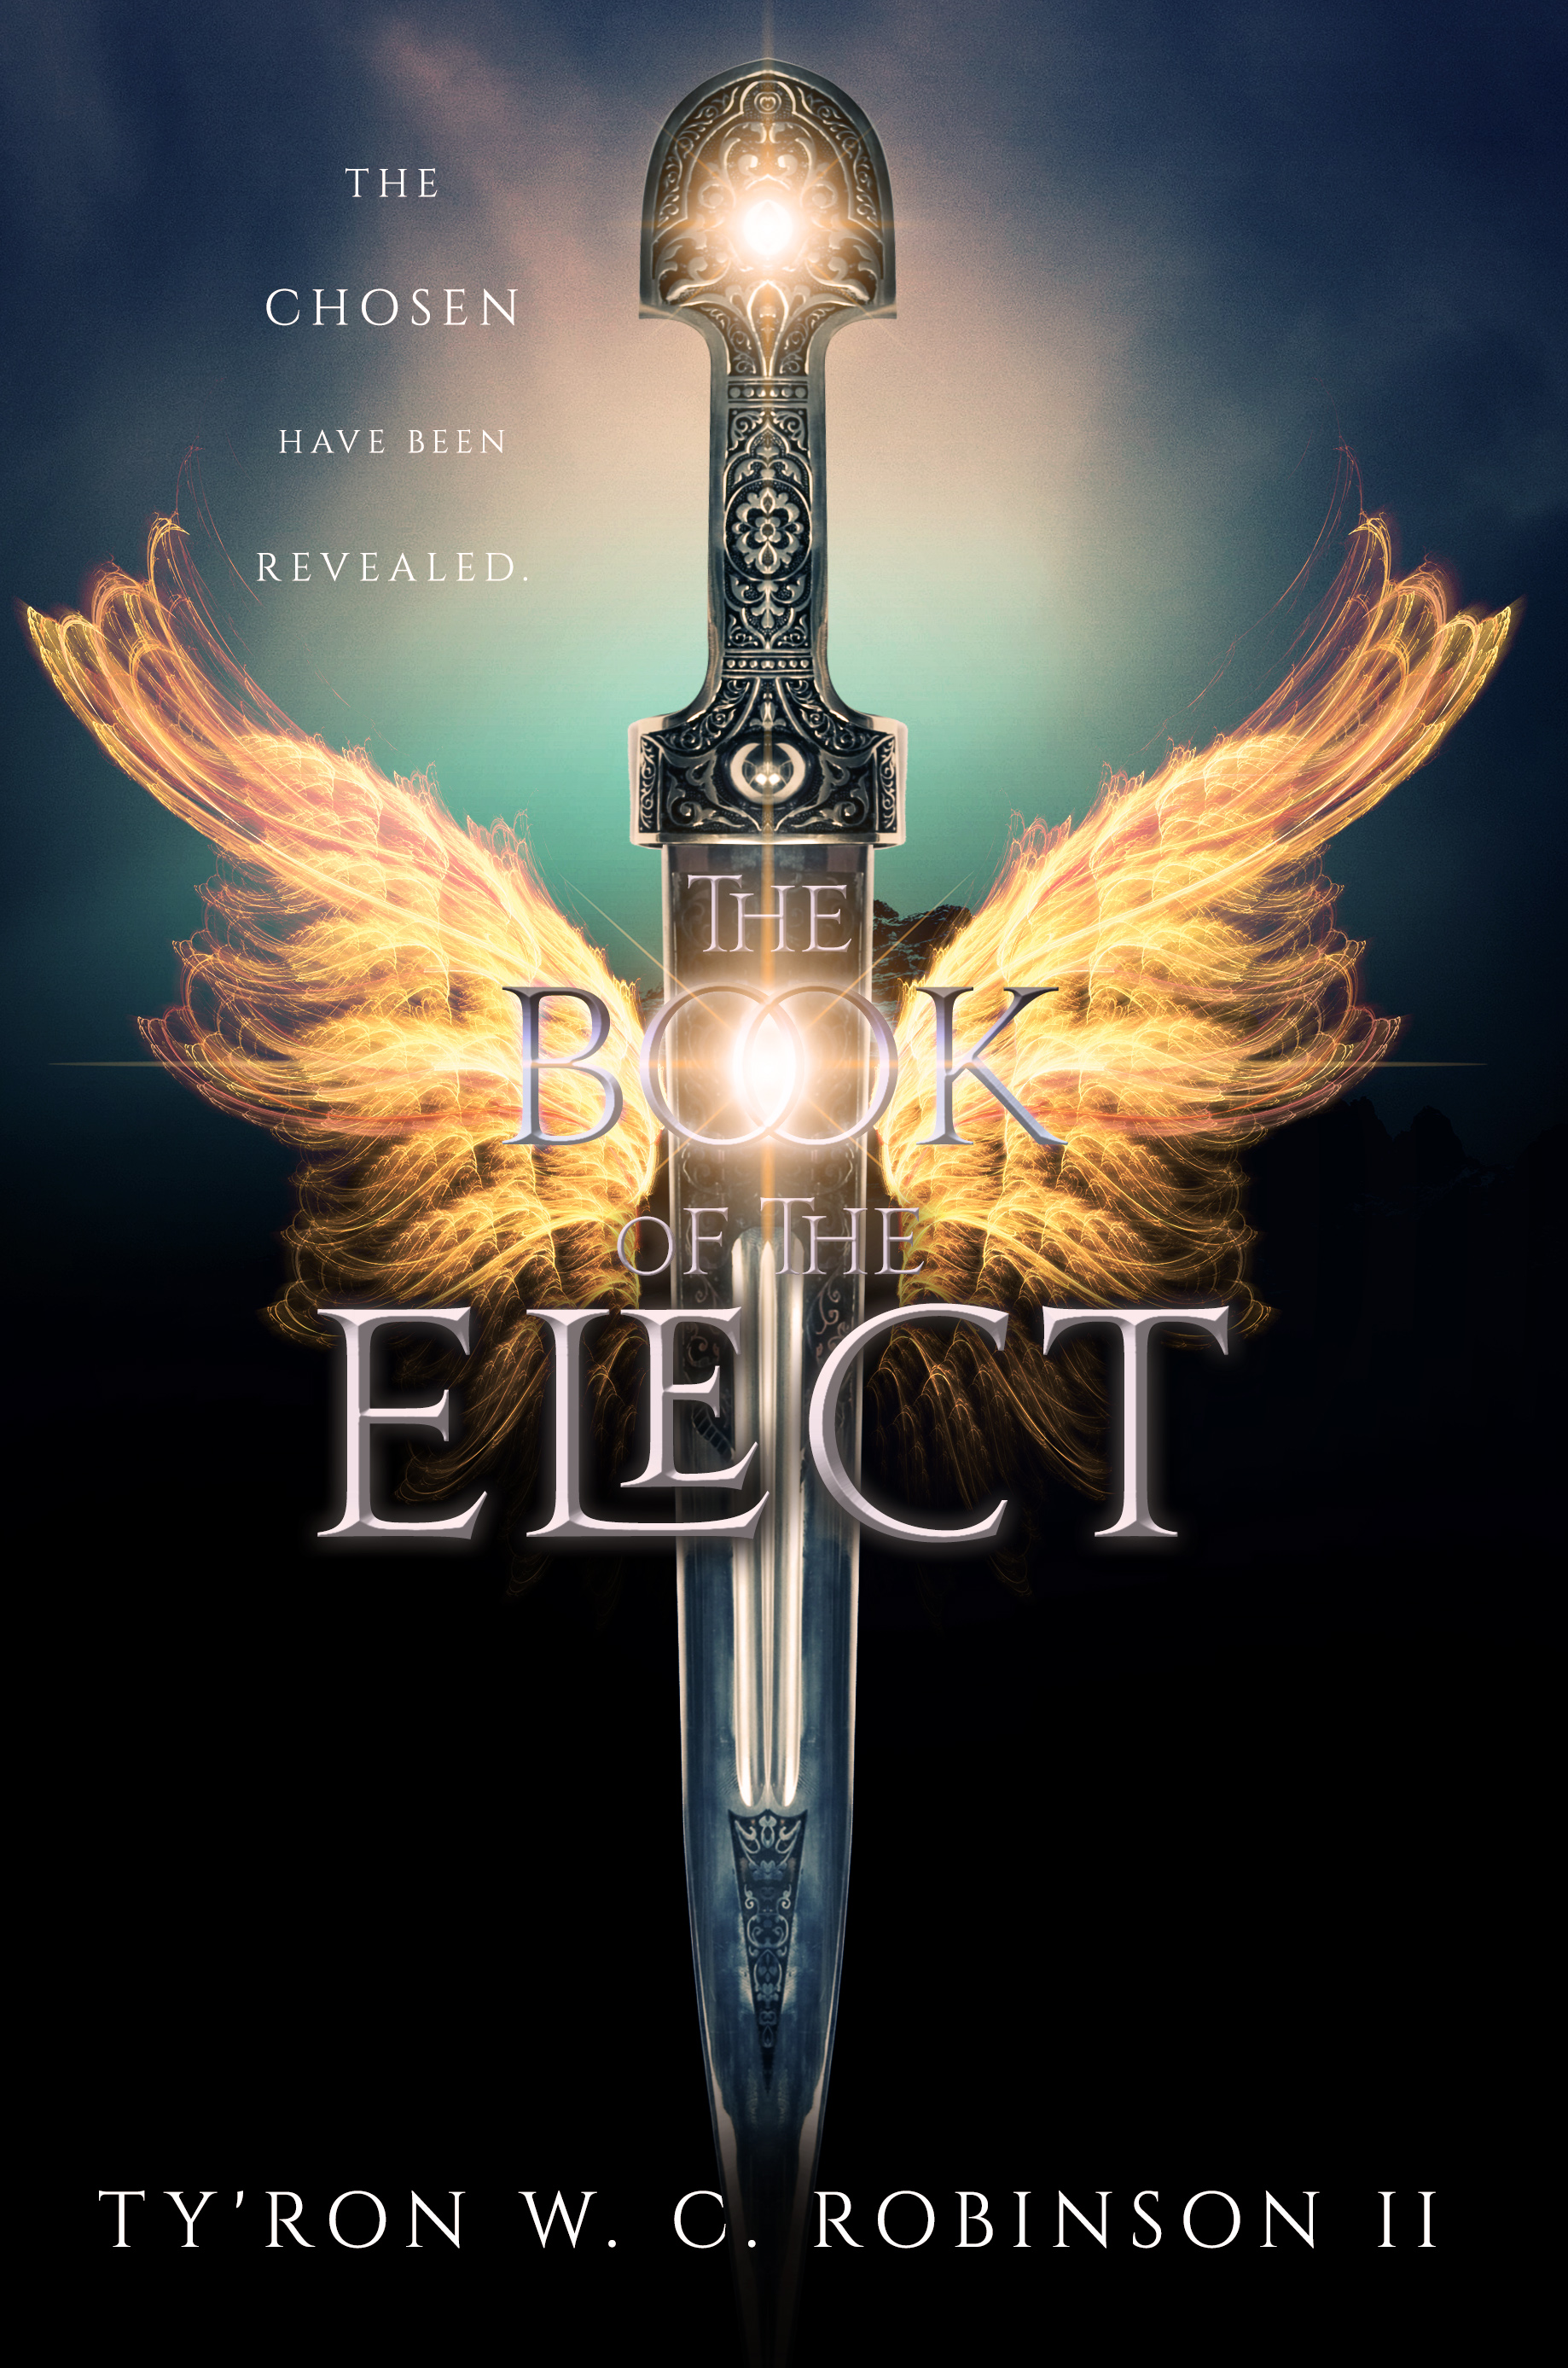 The Book of the Elect - TWCRII - Ebook Cover.jpg